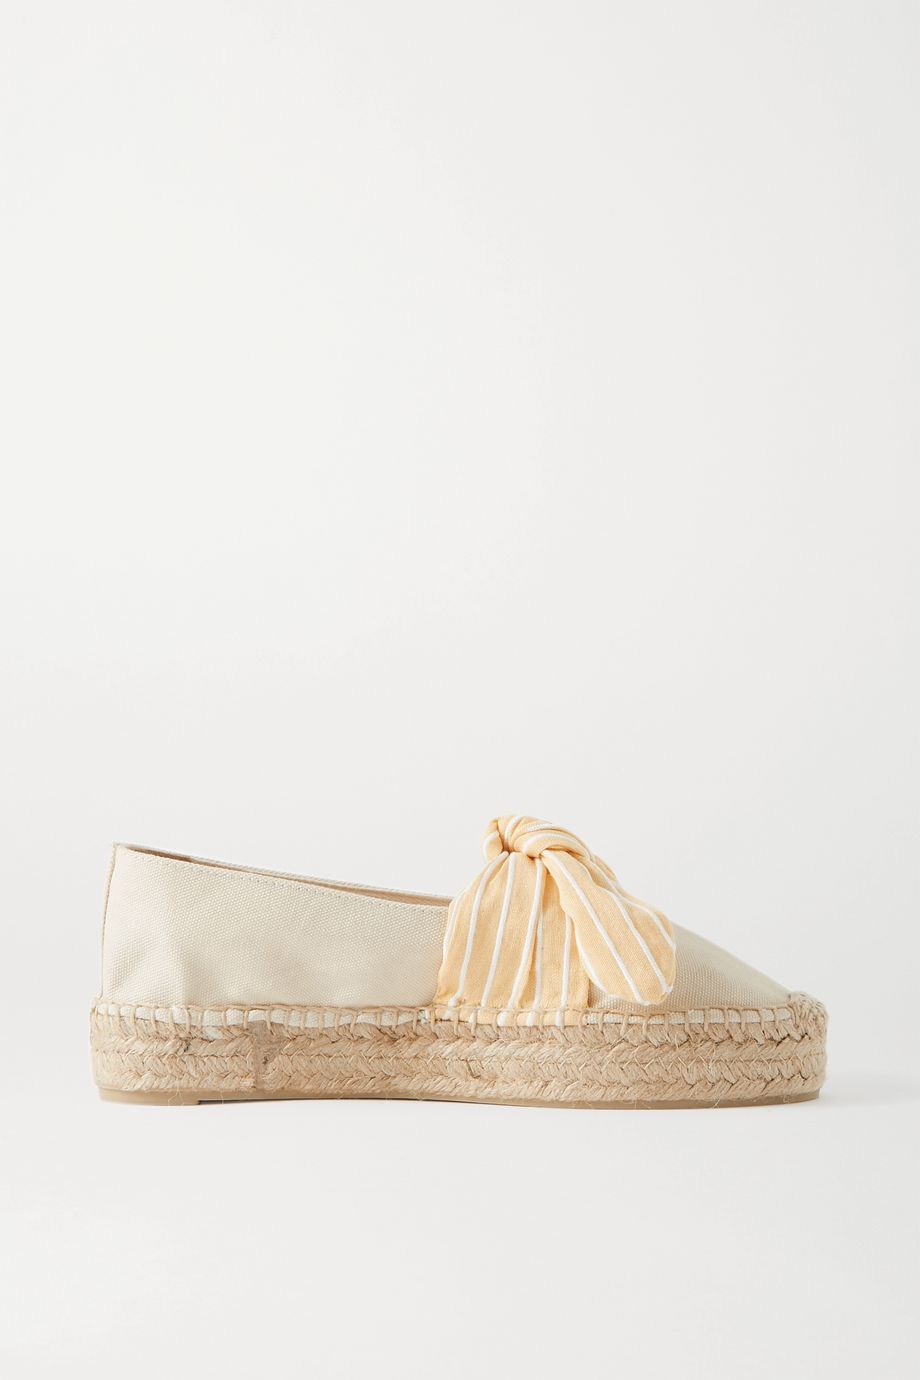 Castañer Kay bow-detailed canvas espadrilles